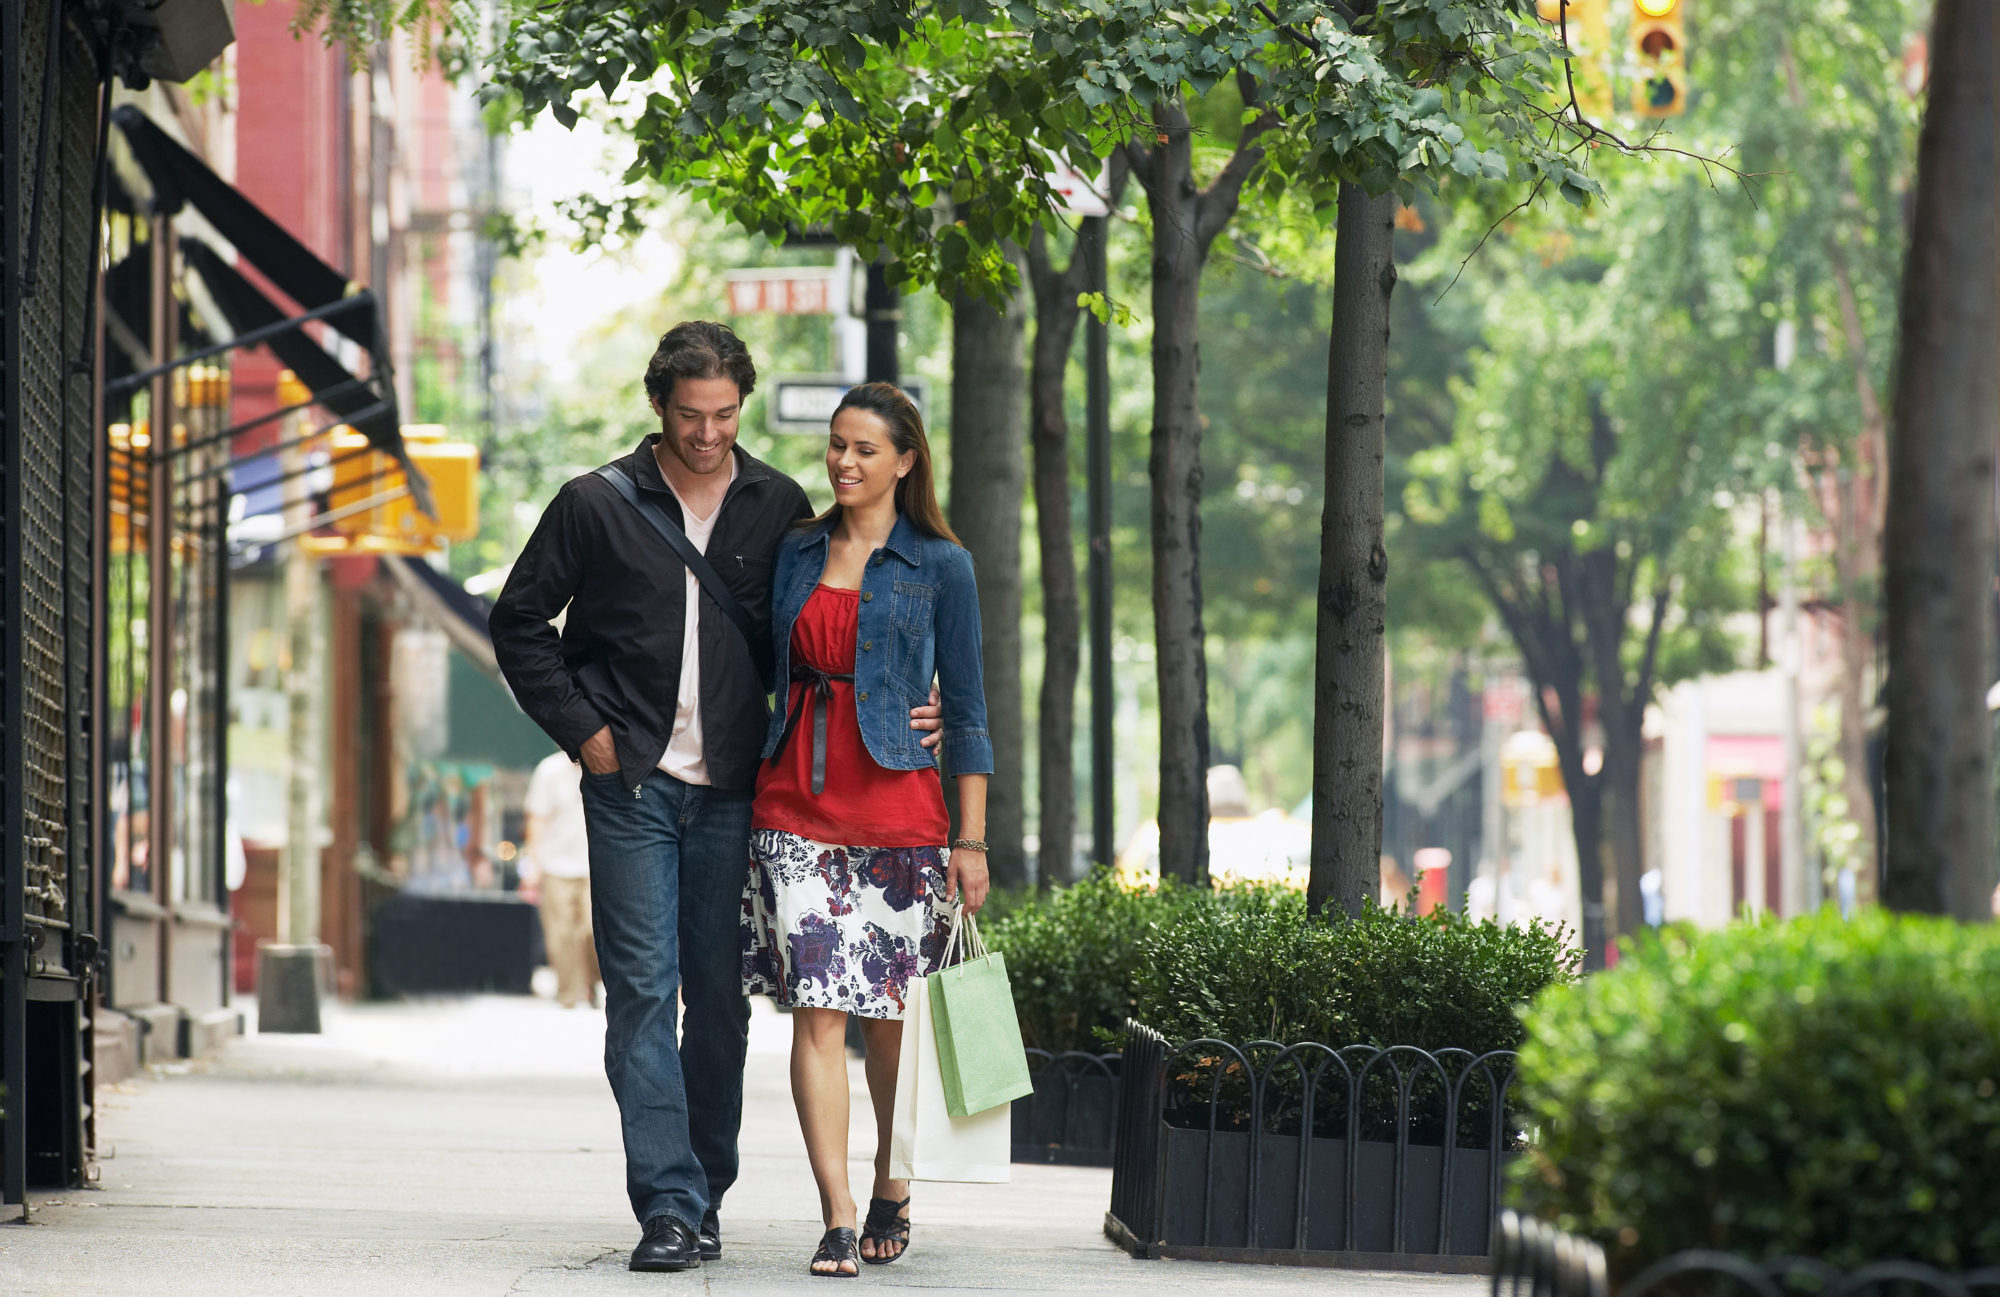 Couple walking outdoors on city sidewalk holding shopping bags